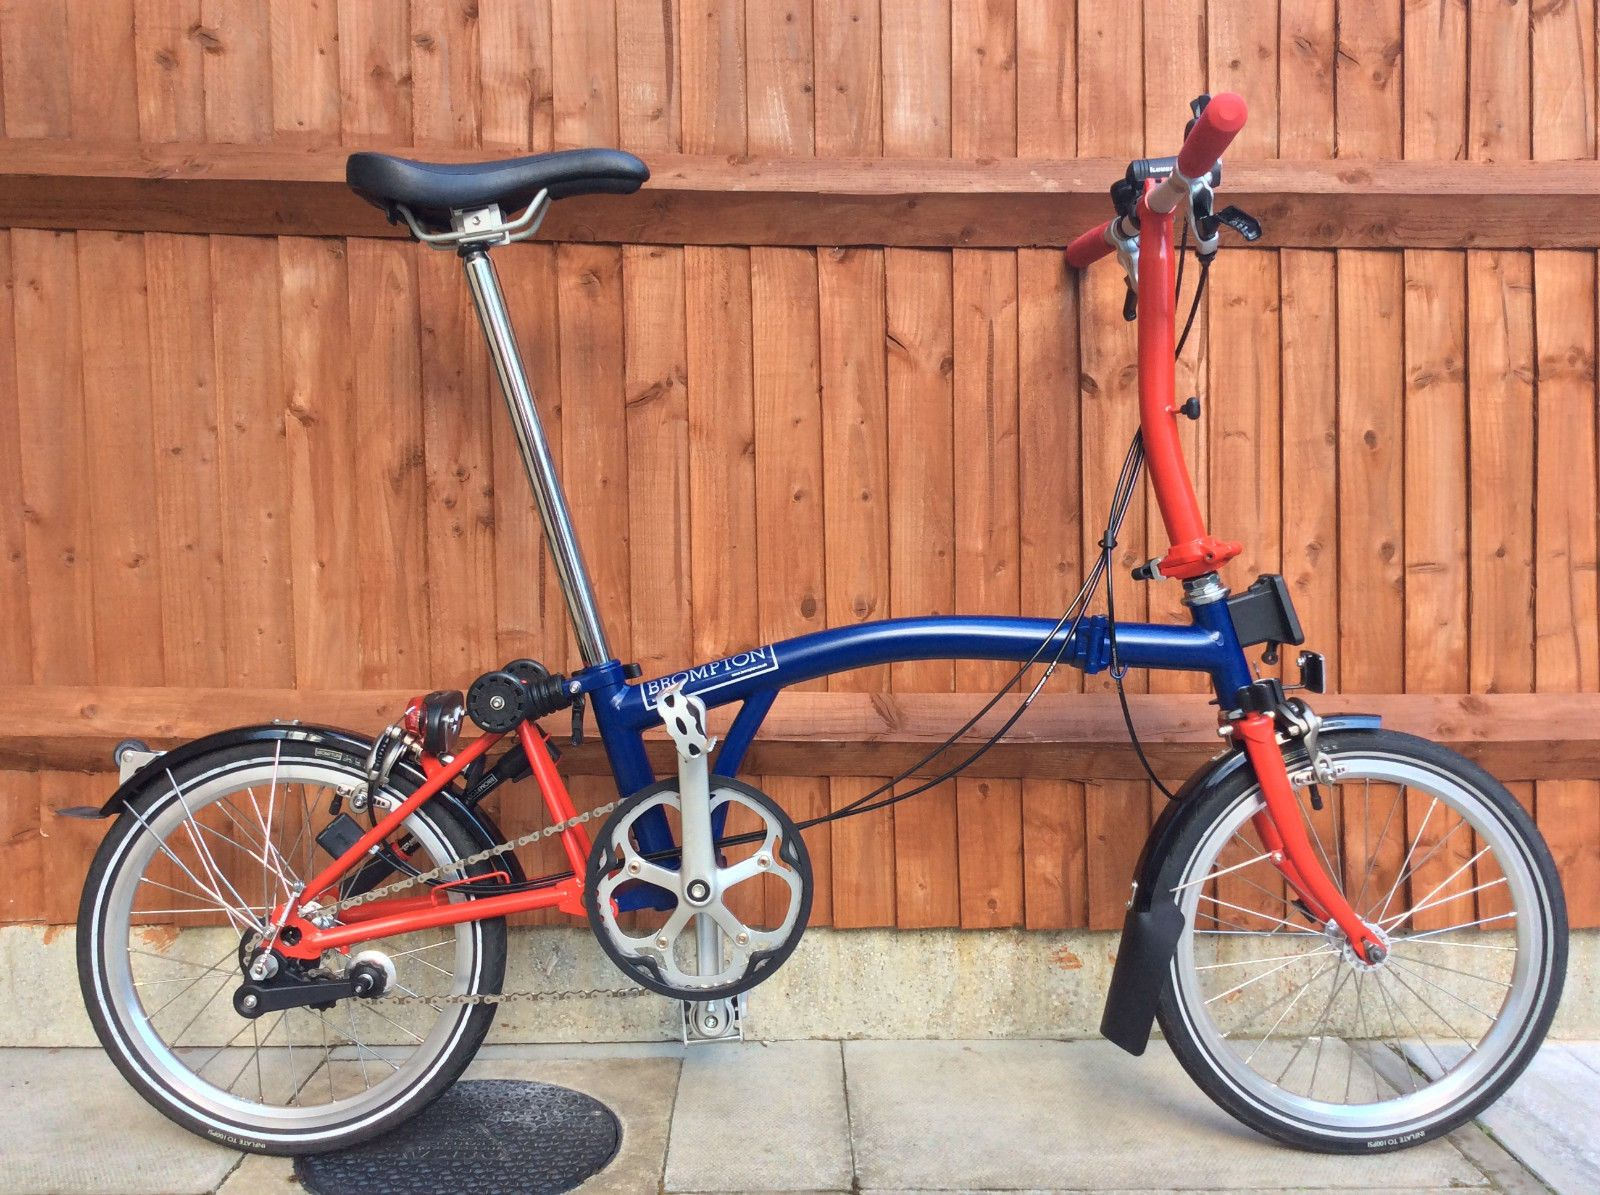 How Much Is Brompton Folding Bike